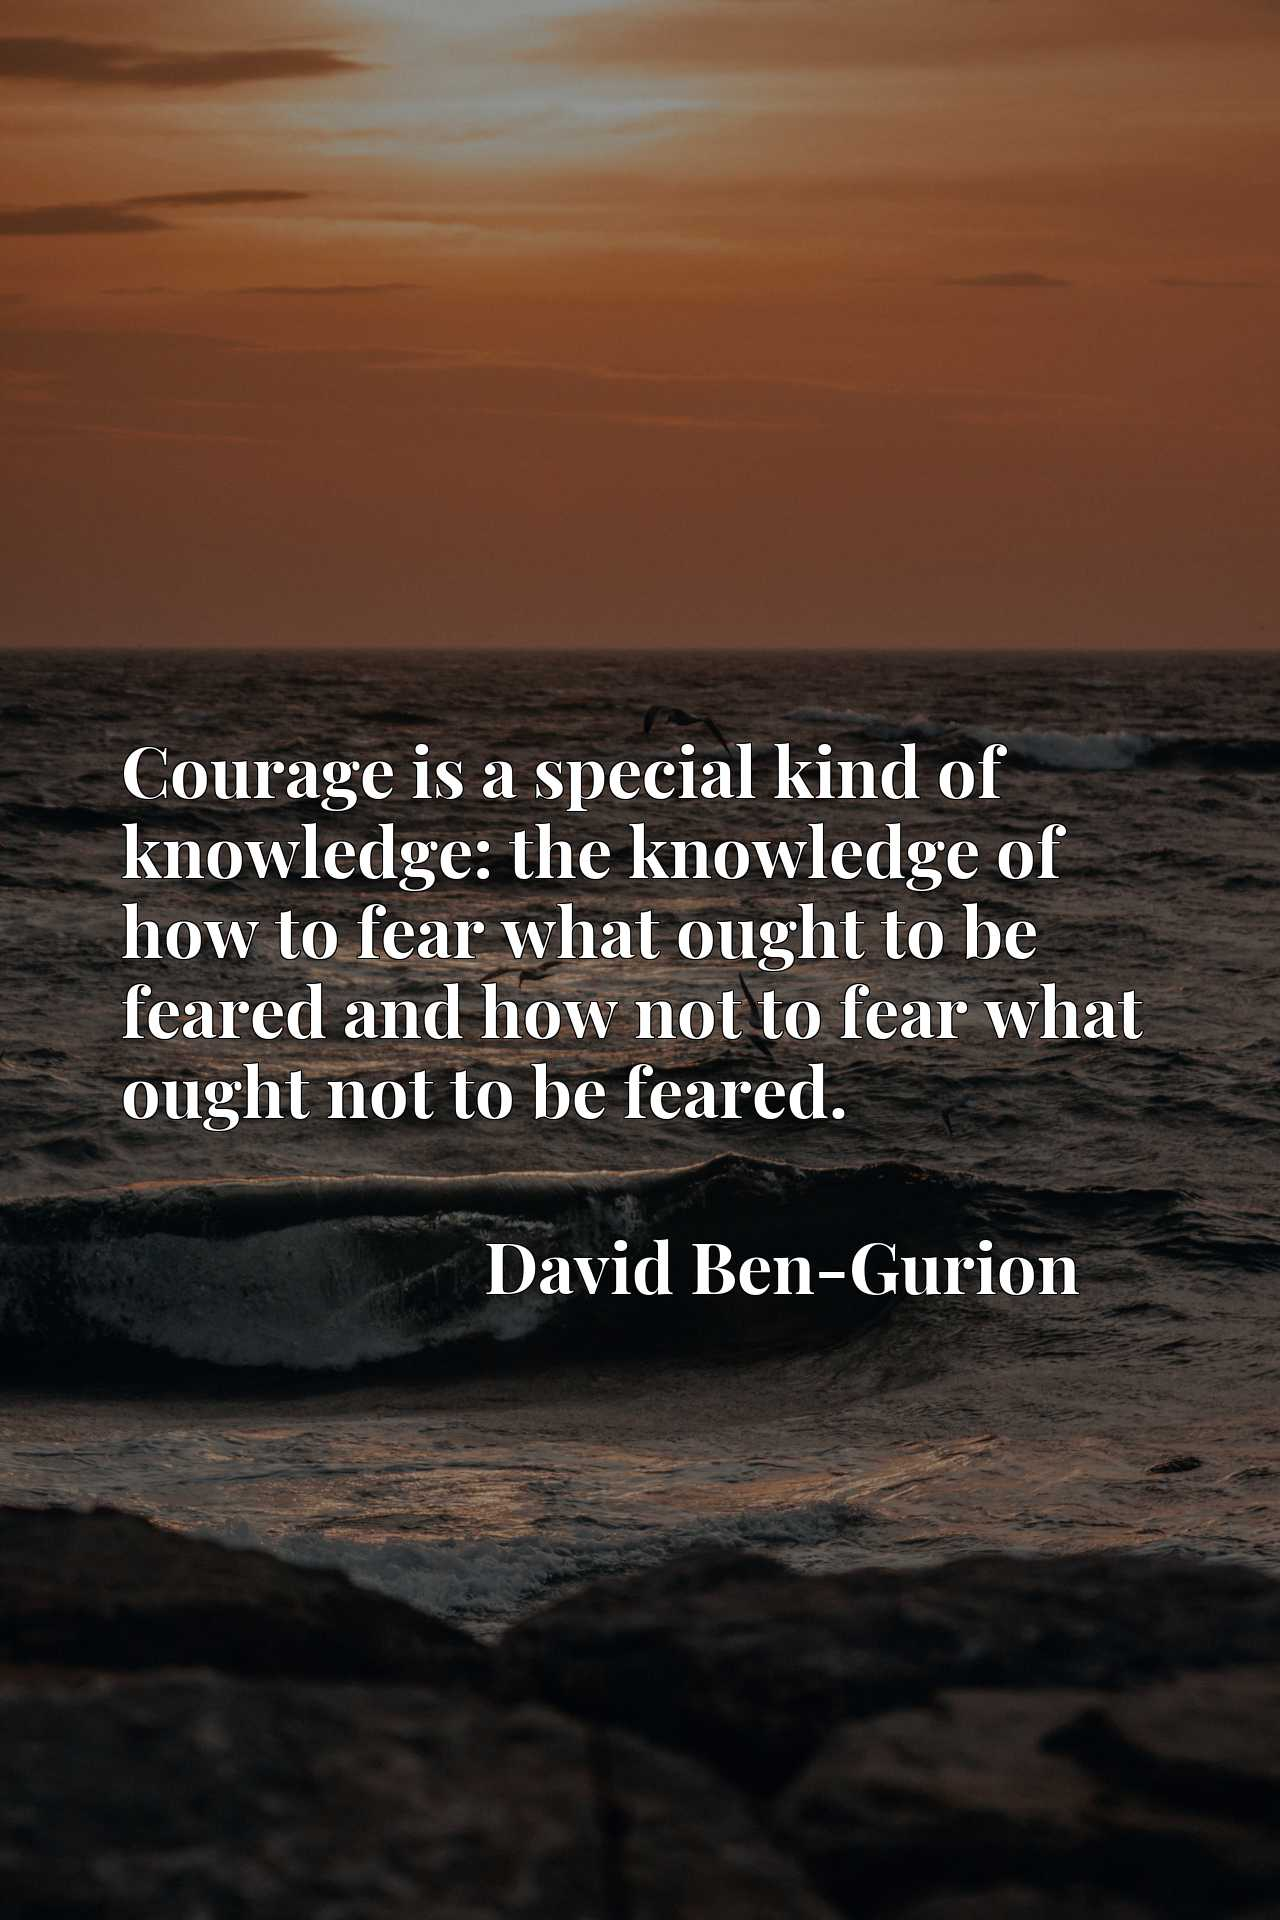 Courage is a special kind of knowledge: the knowledge of how to fear what ought to be feared and how not to fear what ought not to be feared.